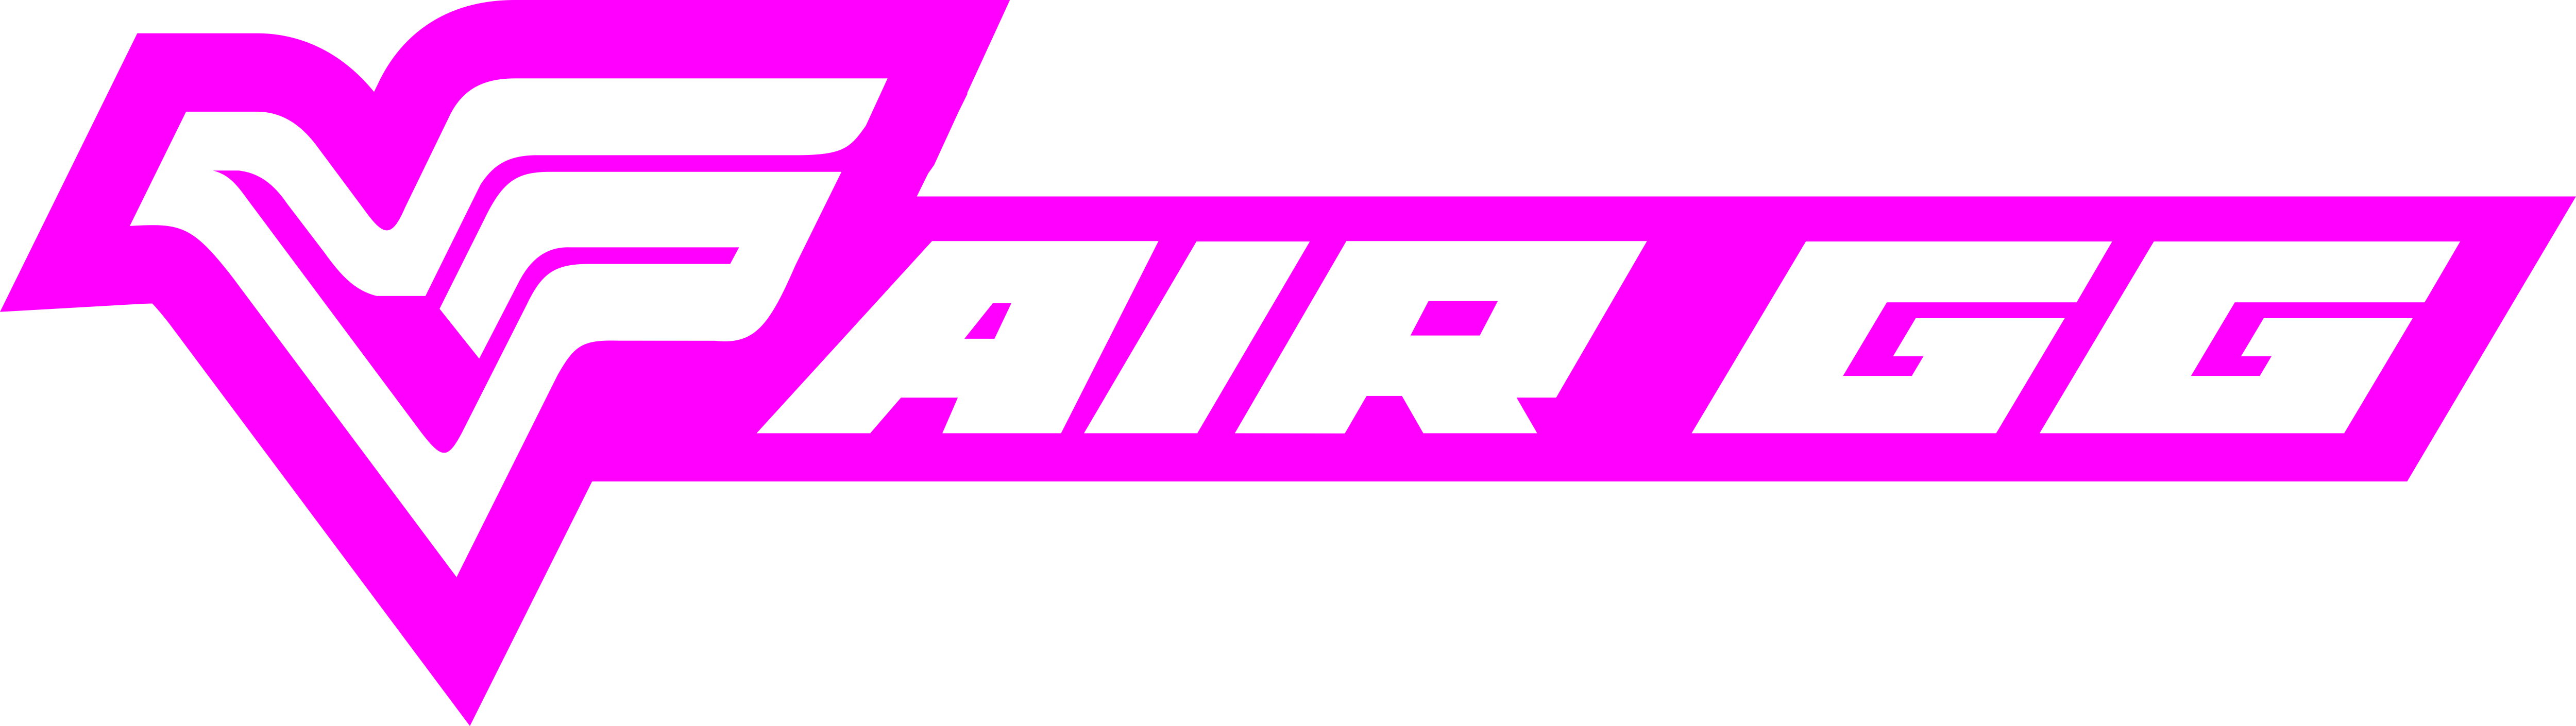 air gg3 by f4jar on deviantart